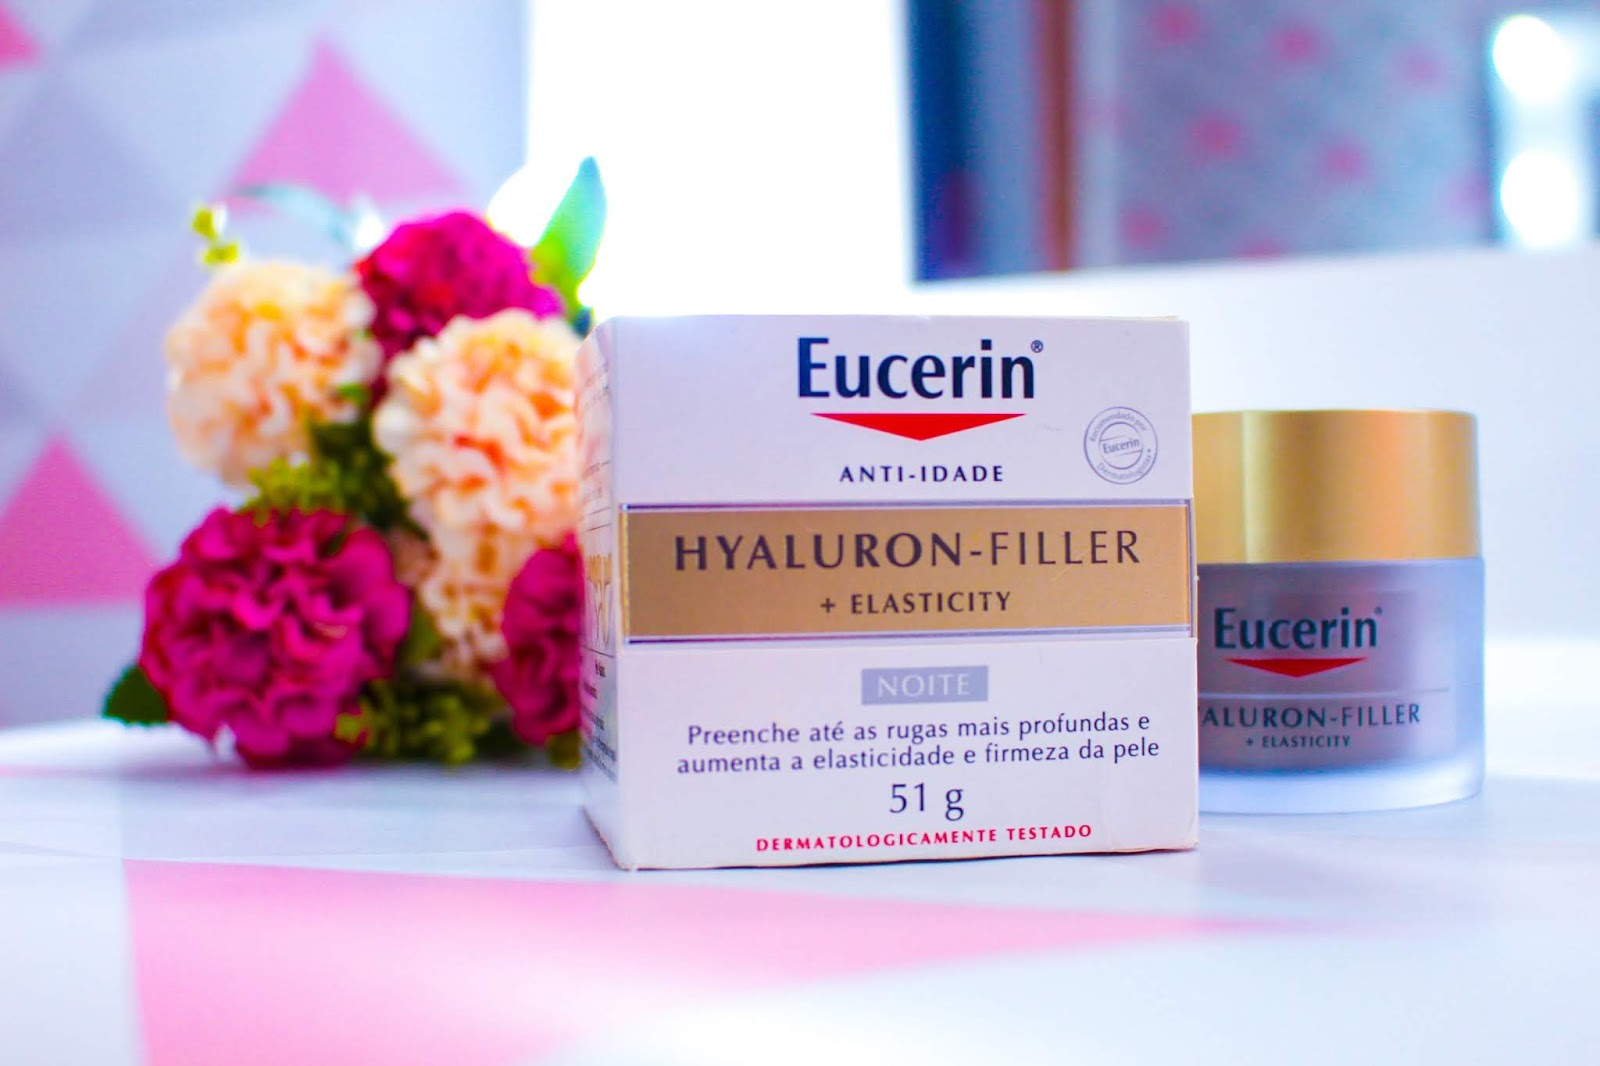 Resenha Anti Idade Eucerin Hyaluron Filler Elasticity Noite